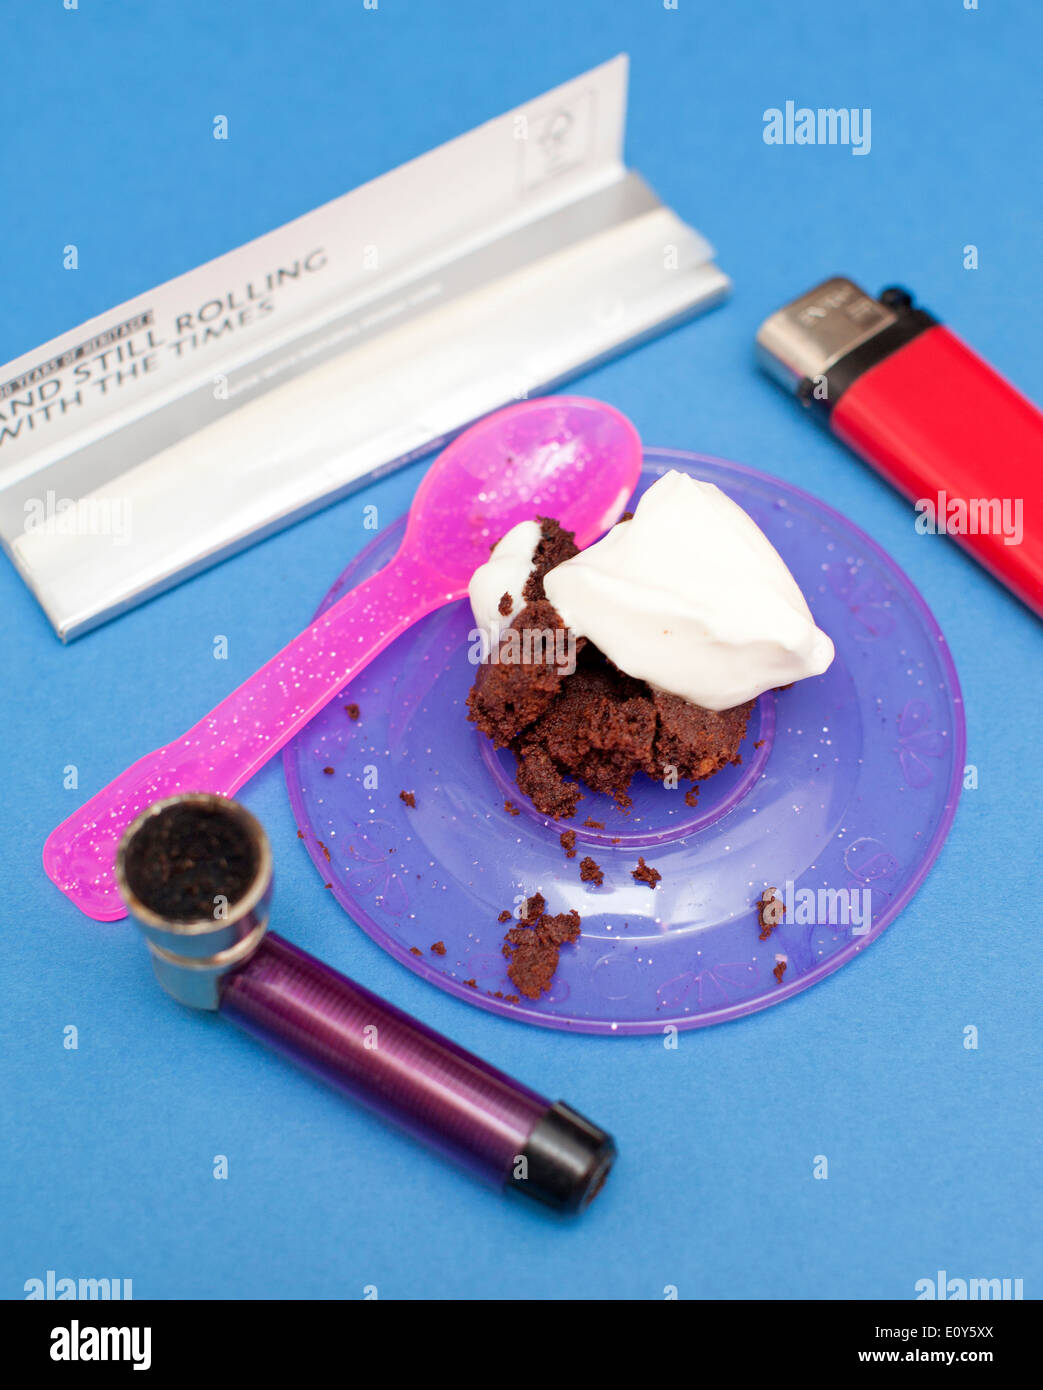 Hash Brownie or Space Cake topped with creme fraiche framed by smoking paraphernalia, London - Stock Image